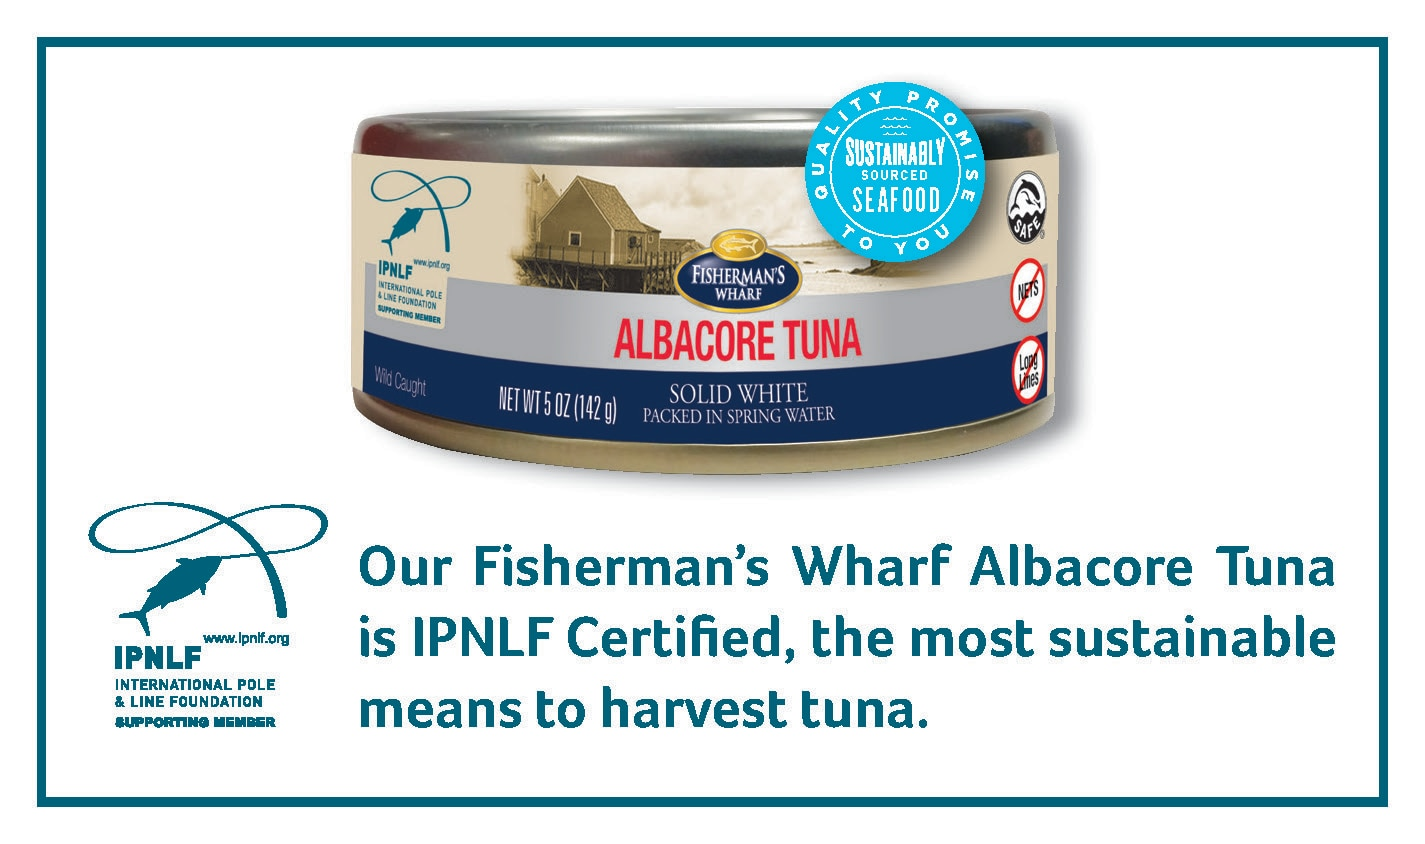 AlbacoreTuna, Our fisherman's wharf albacore tuna is ipnlf certified, the most sustainable means to harvest tuna.